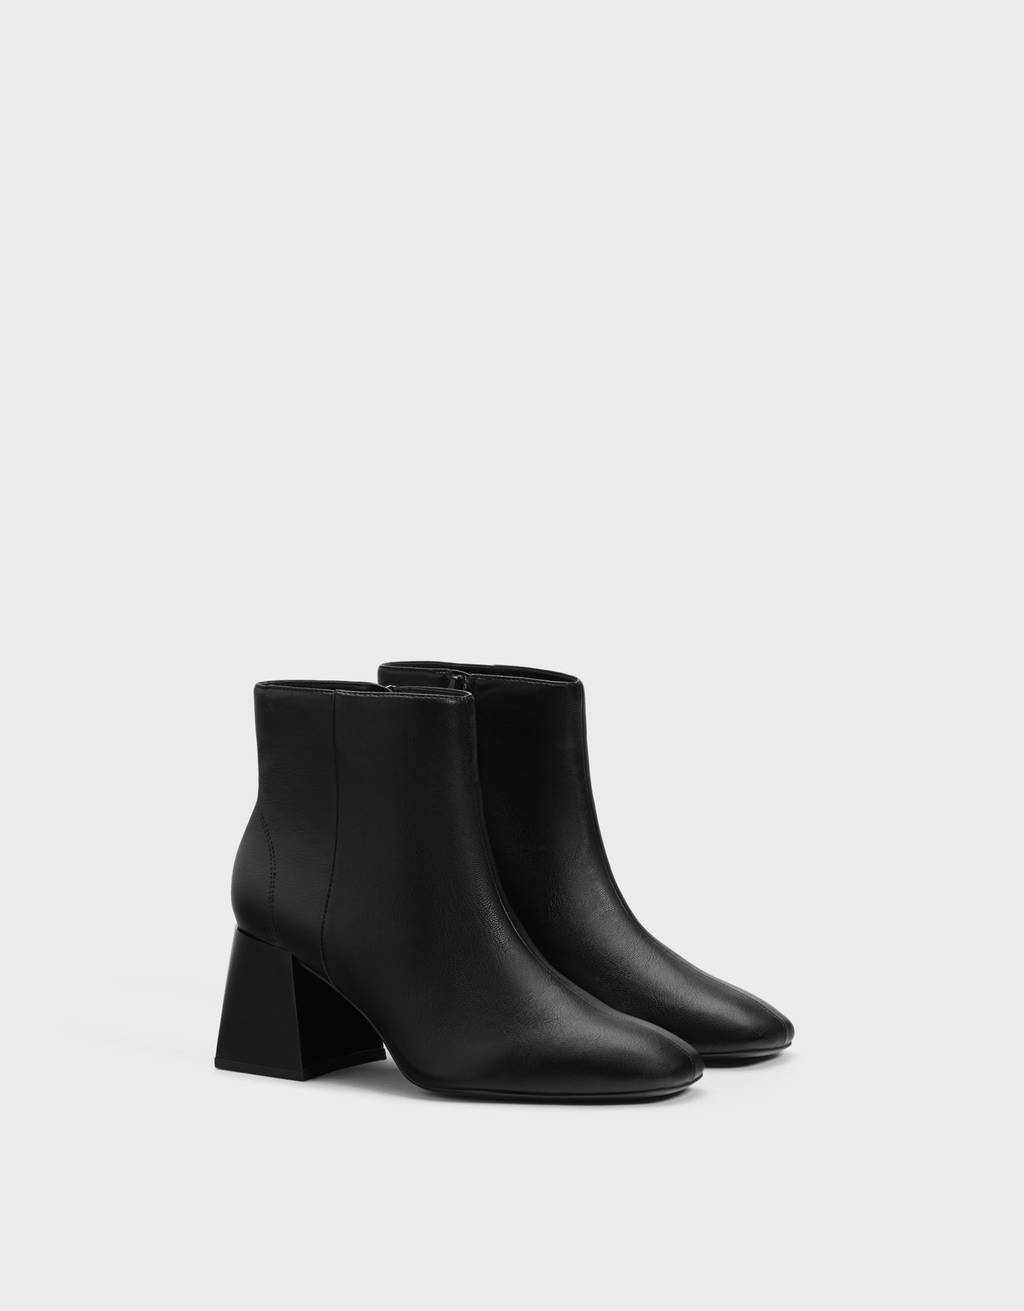 Ankle boots with square heel